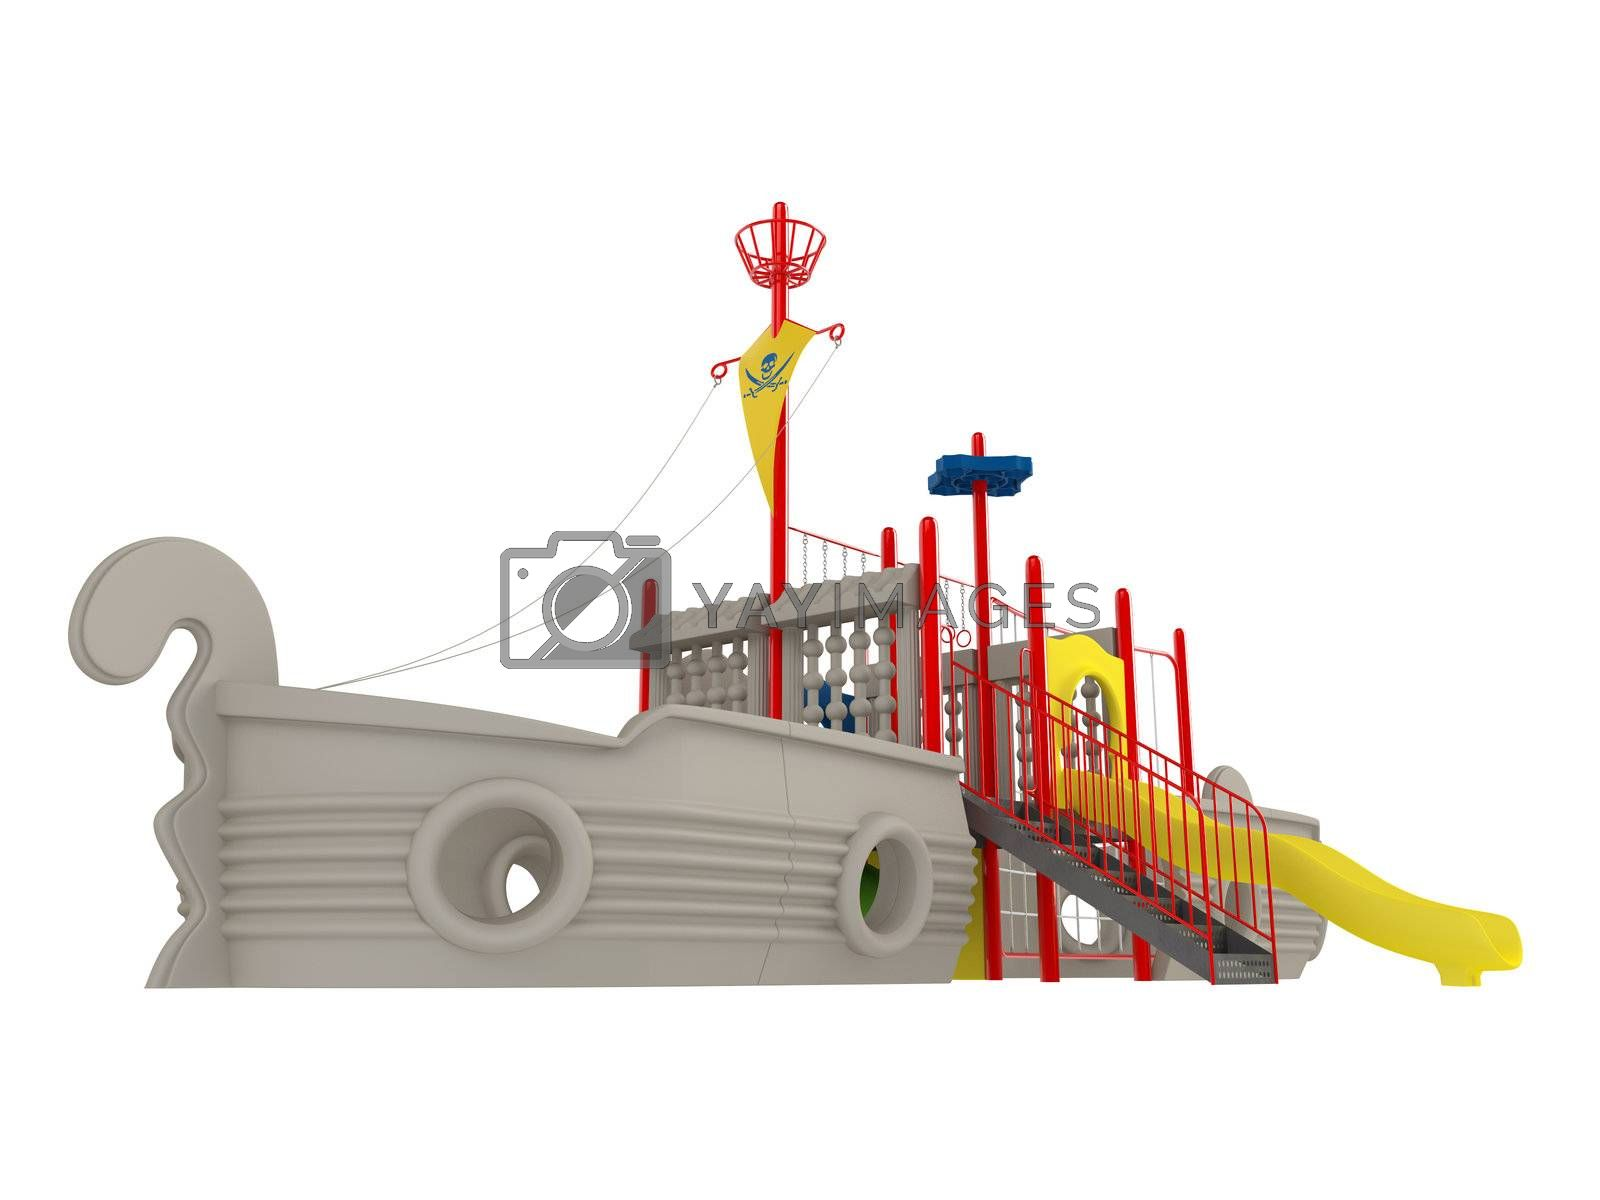 Piracy ship playground isolated on white background